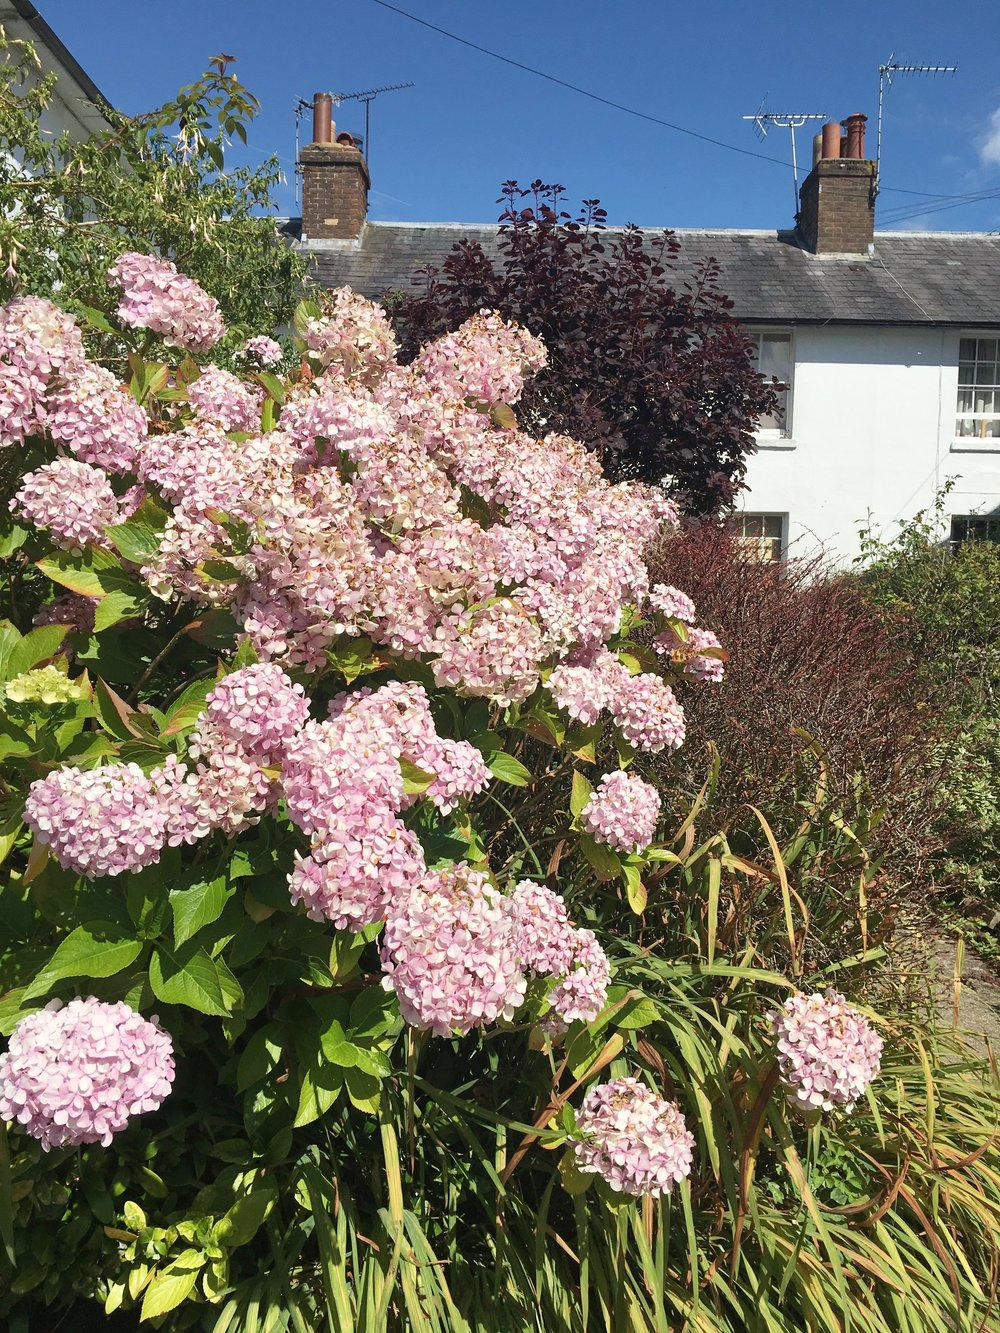 The beautiful village of Frant near Tunbridge Wells is a favourite place to go and house spot, this one has my favourite flowers - hydrangeas - in the garden. I just love a wild garden!